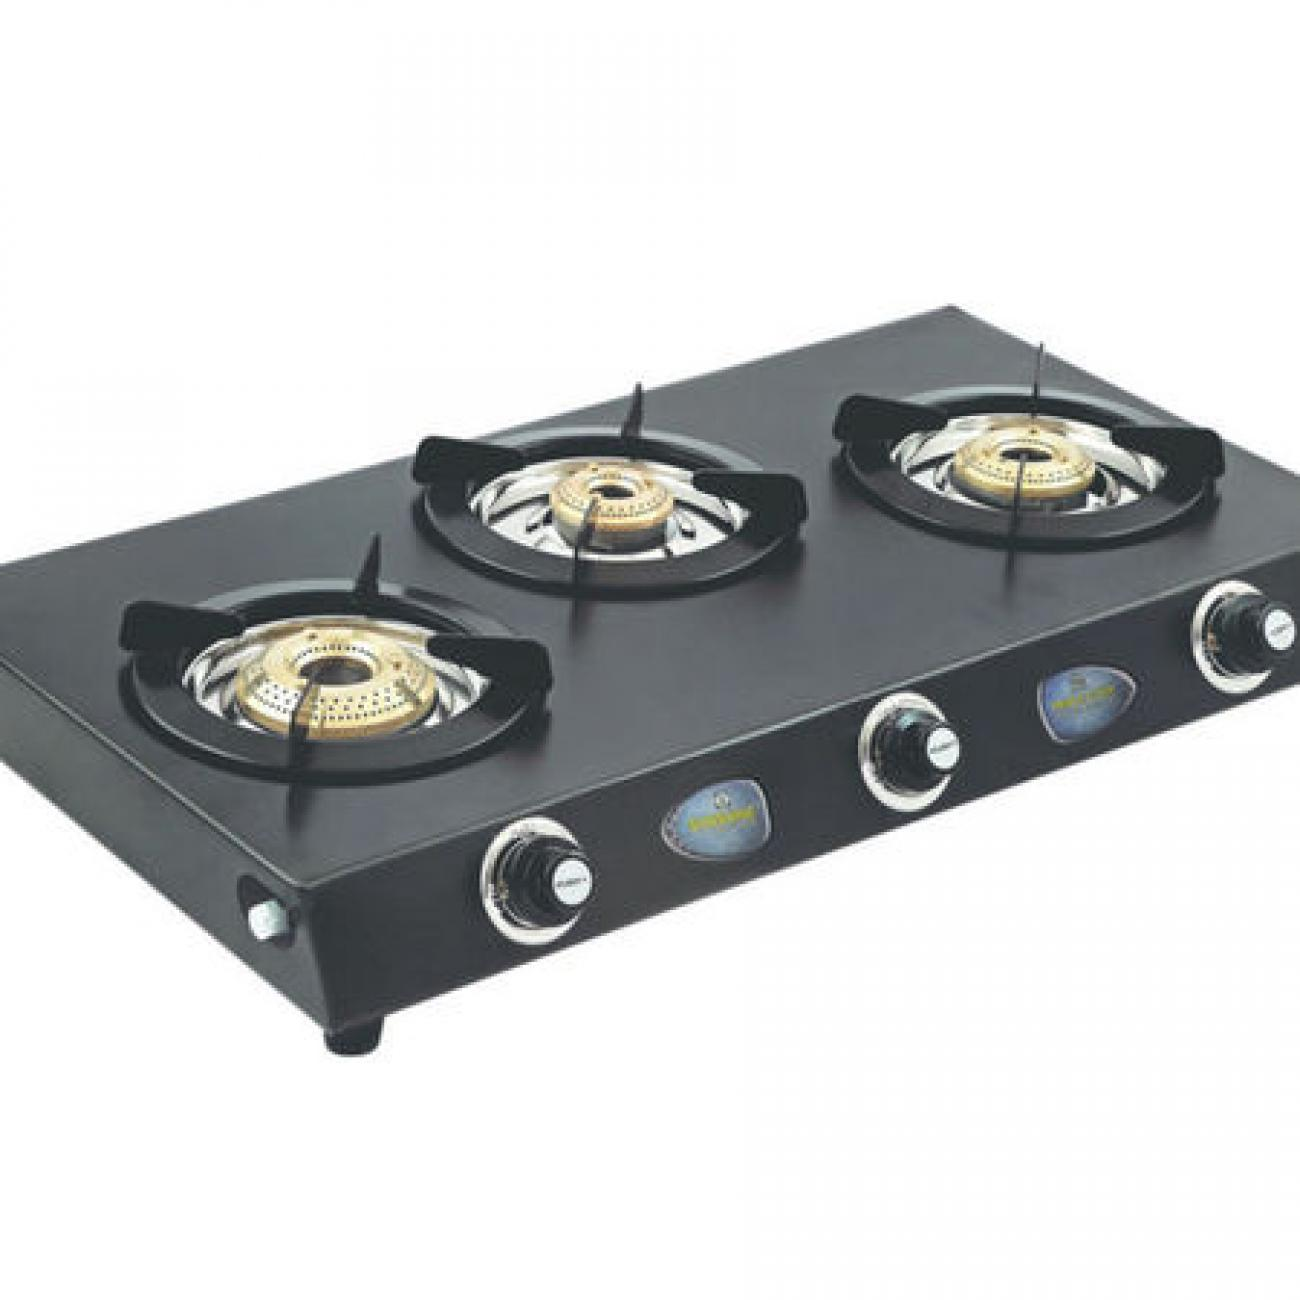 Cooking gas stove